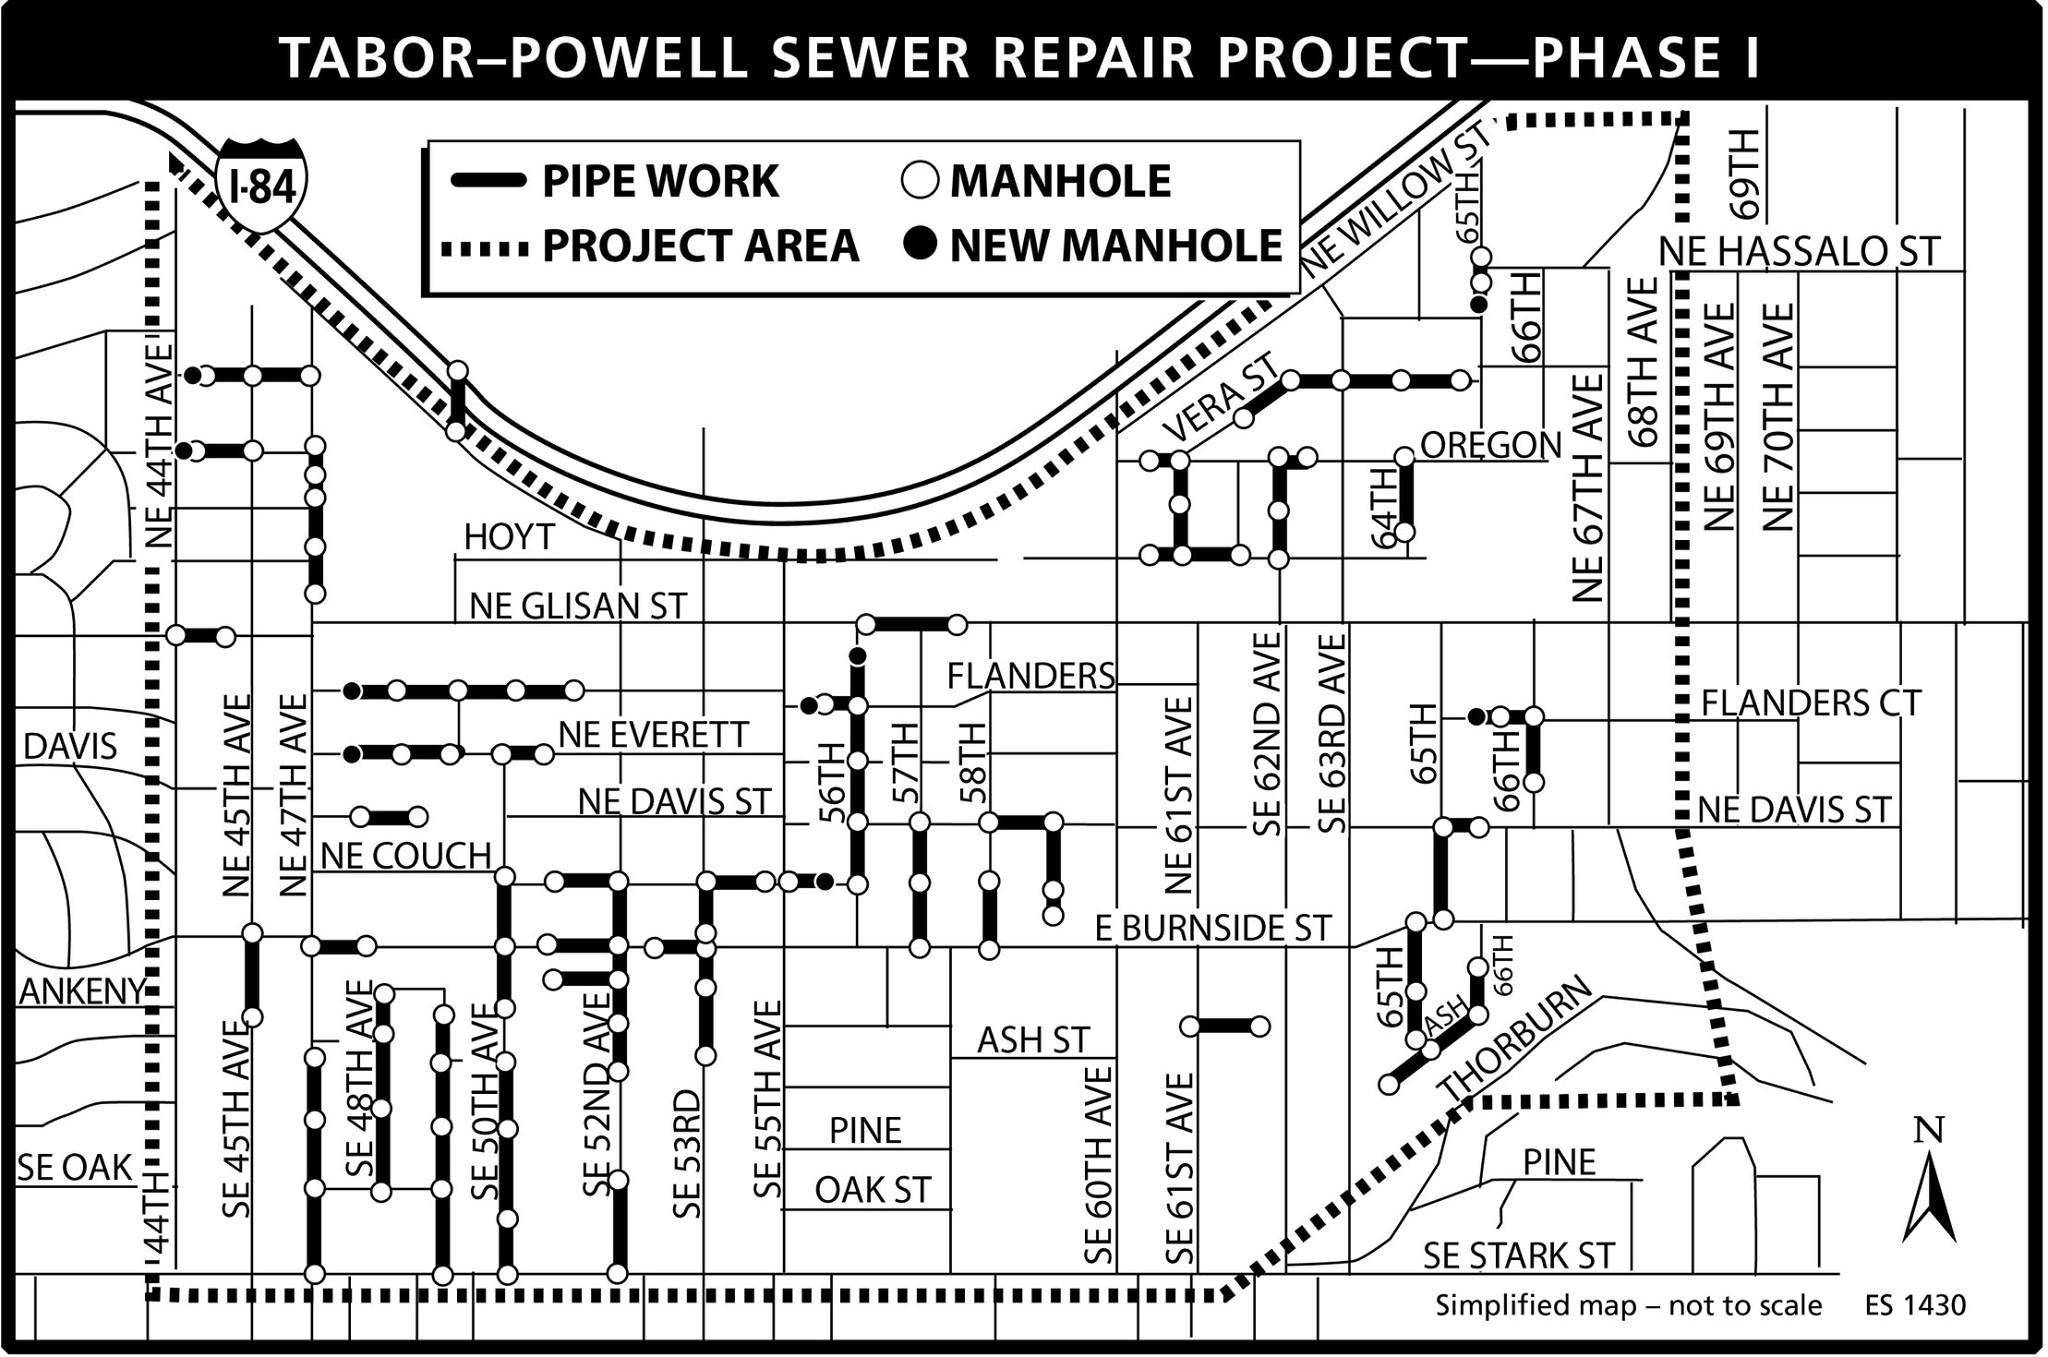 August 19 NTNA board meeting will feature a presentation on upcoming sewer work